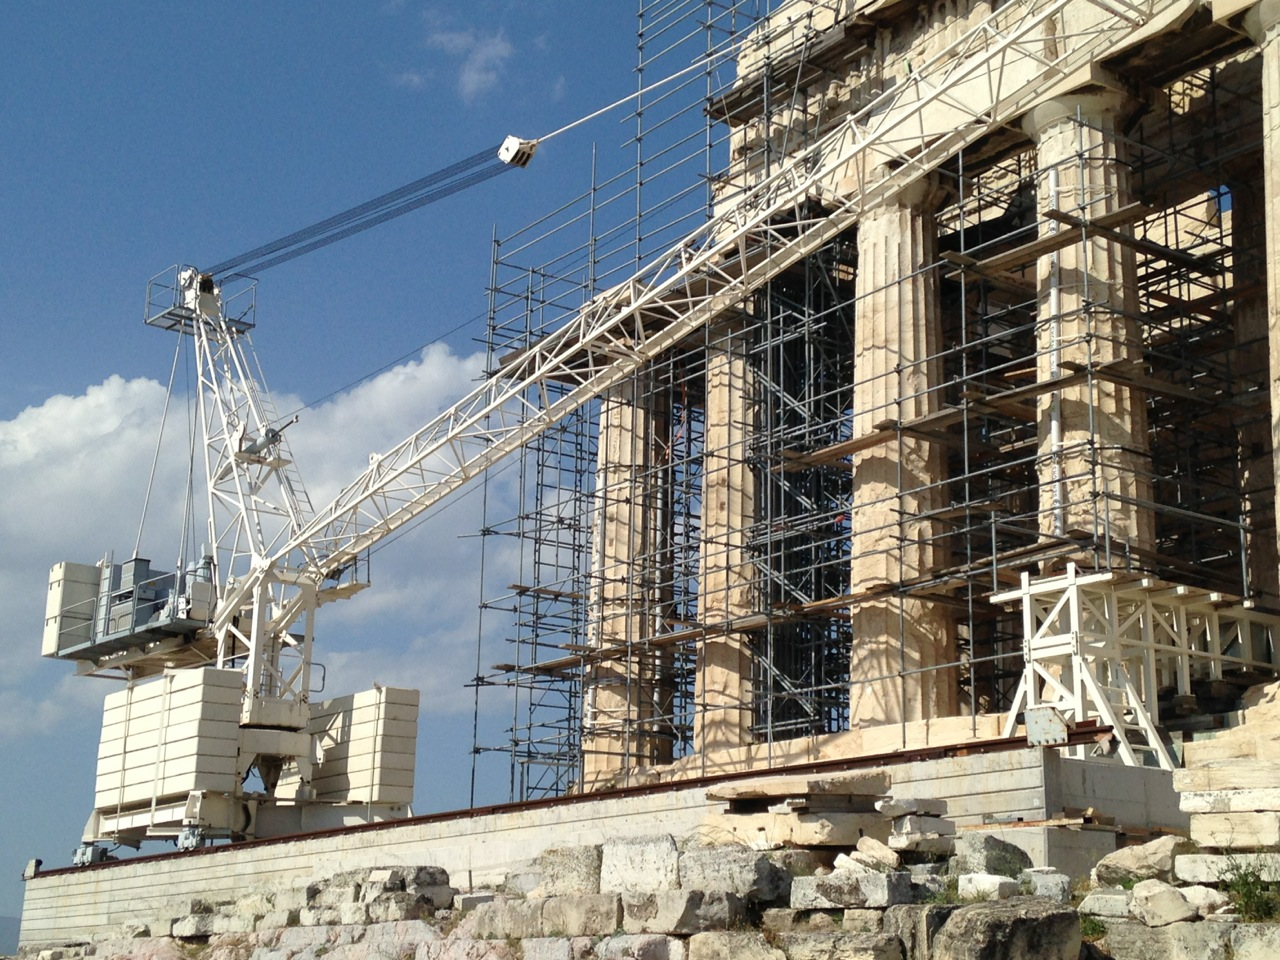 A construction crane and scaffolding at the west end of the Parthenon at the Acropolis in Athens, Greece.